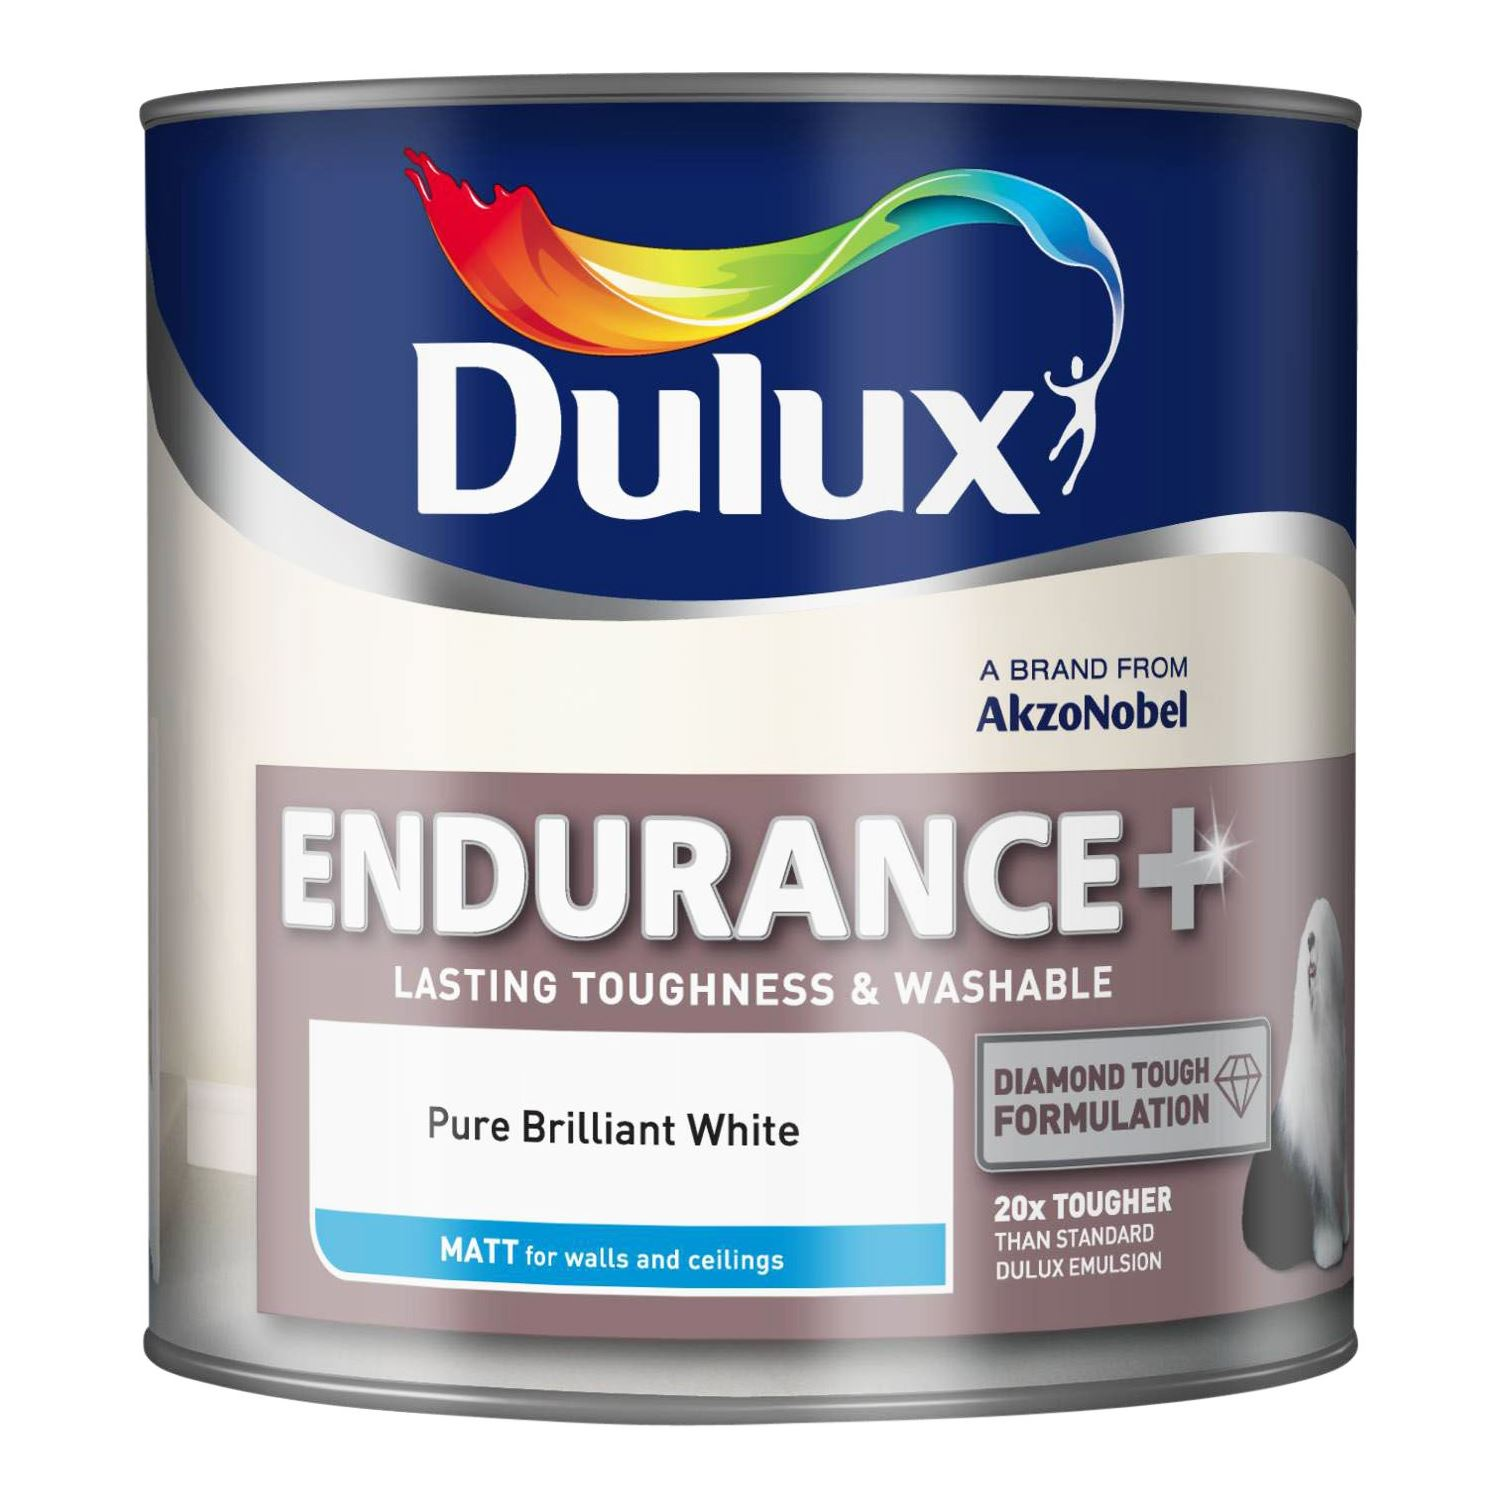 Dulux Endurance Matt Emulsion Paint Toughness Washable Walls Ceiling 5l Ebay